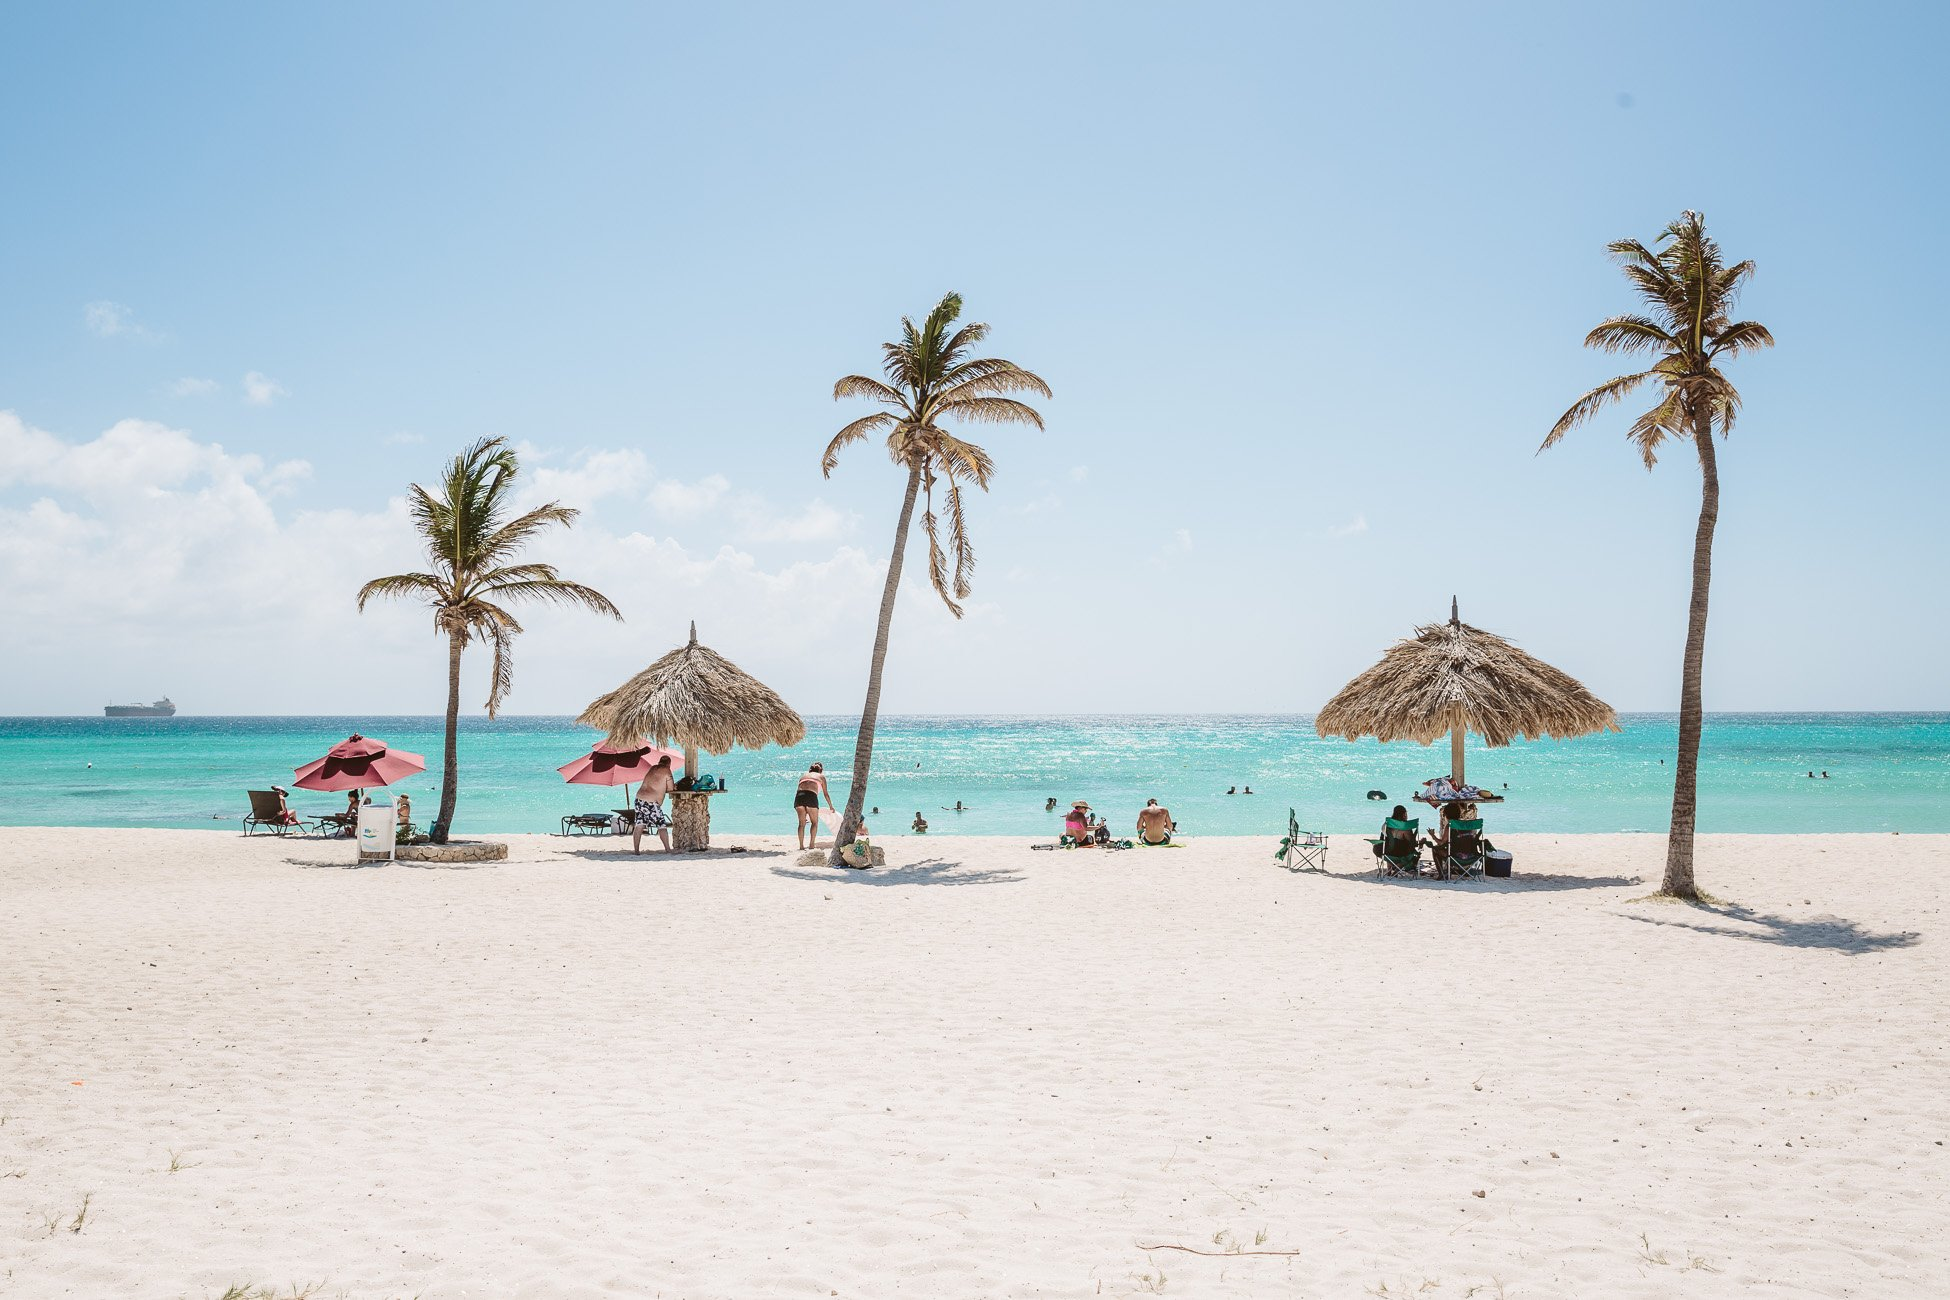 Classic Aruba weather at Arashi Beach